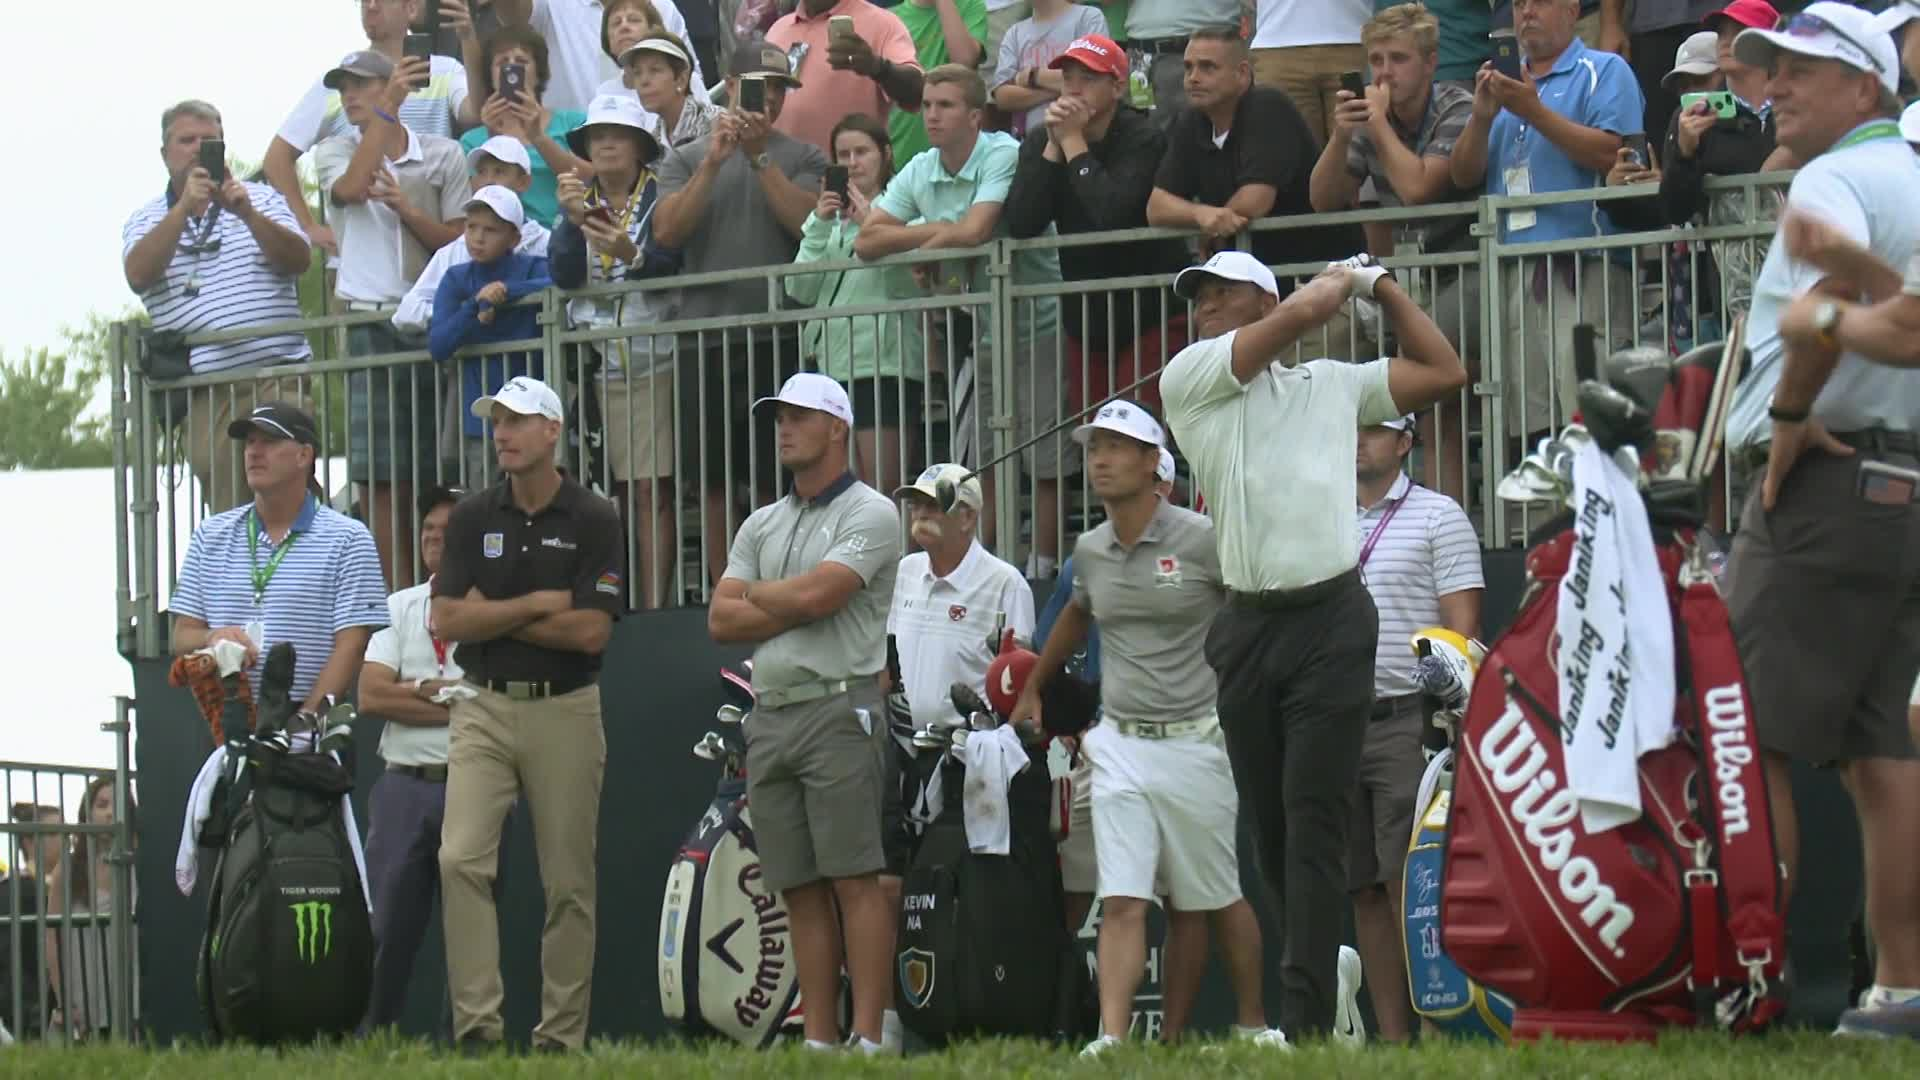 2018 Pga Championship Event Preview Of 100th Edition Golf Channel